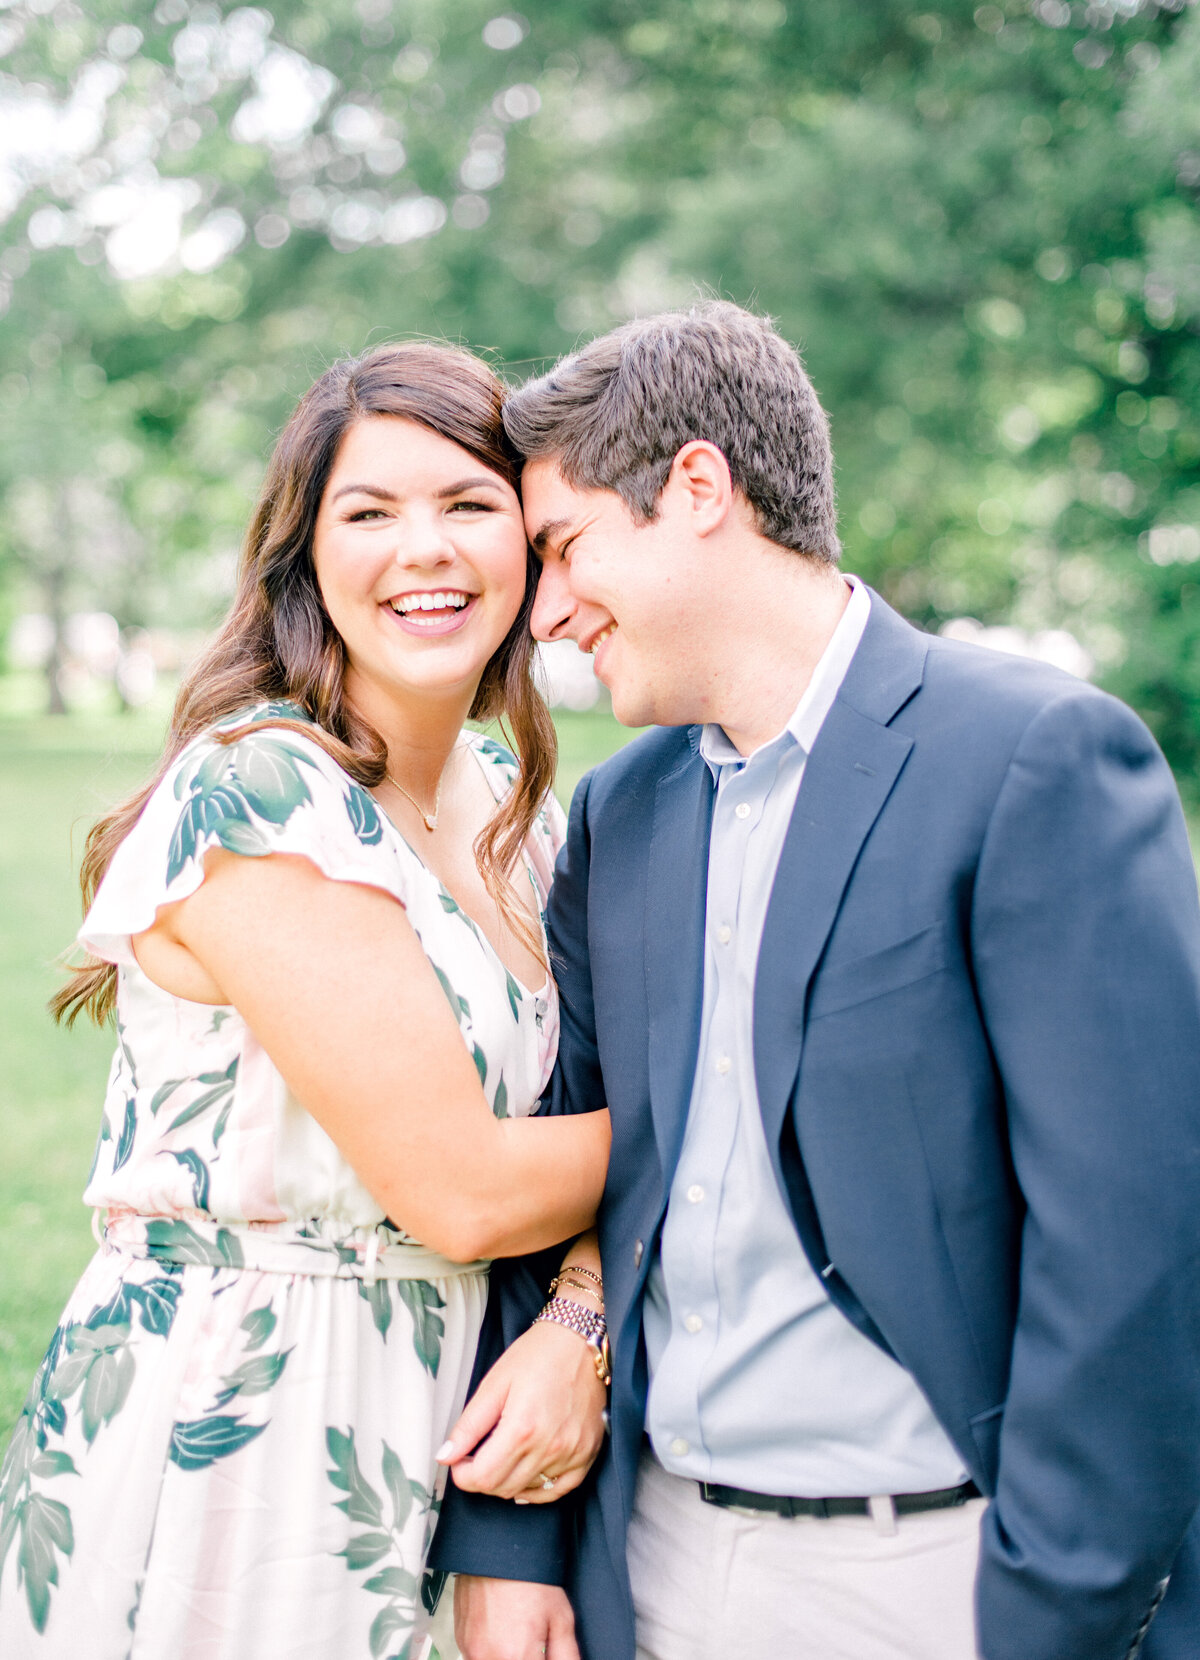 Sweet Arsenal Park Engagement Session Featuring a Dog-1